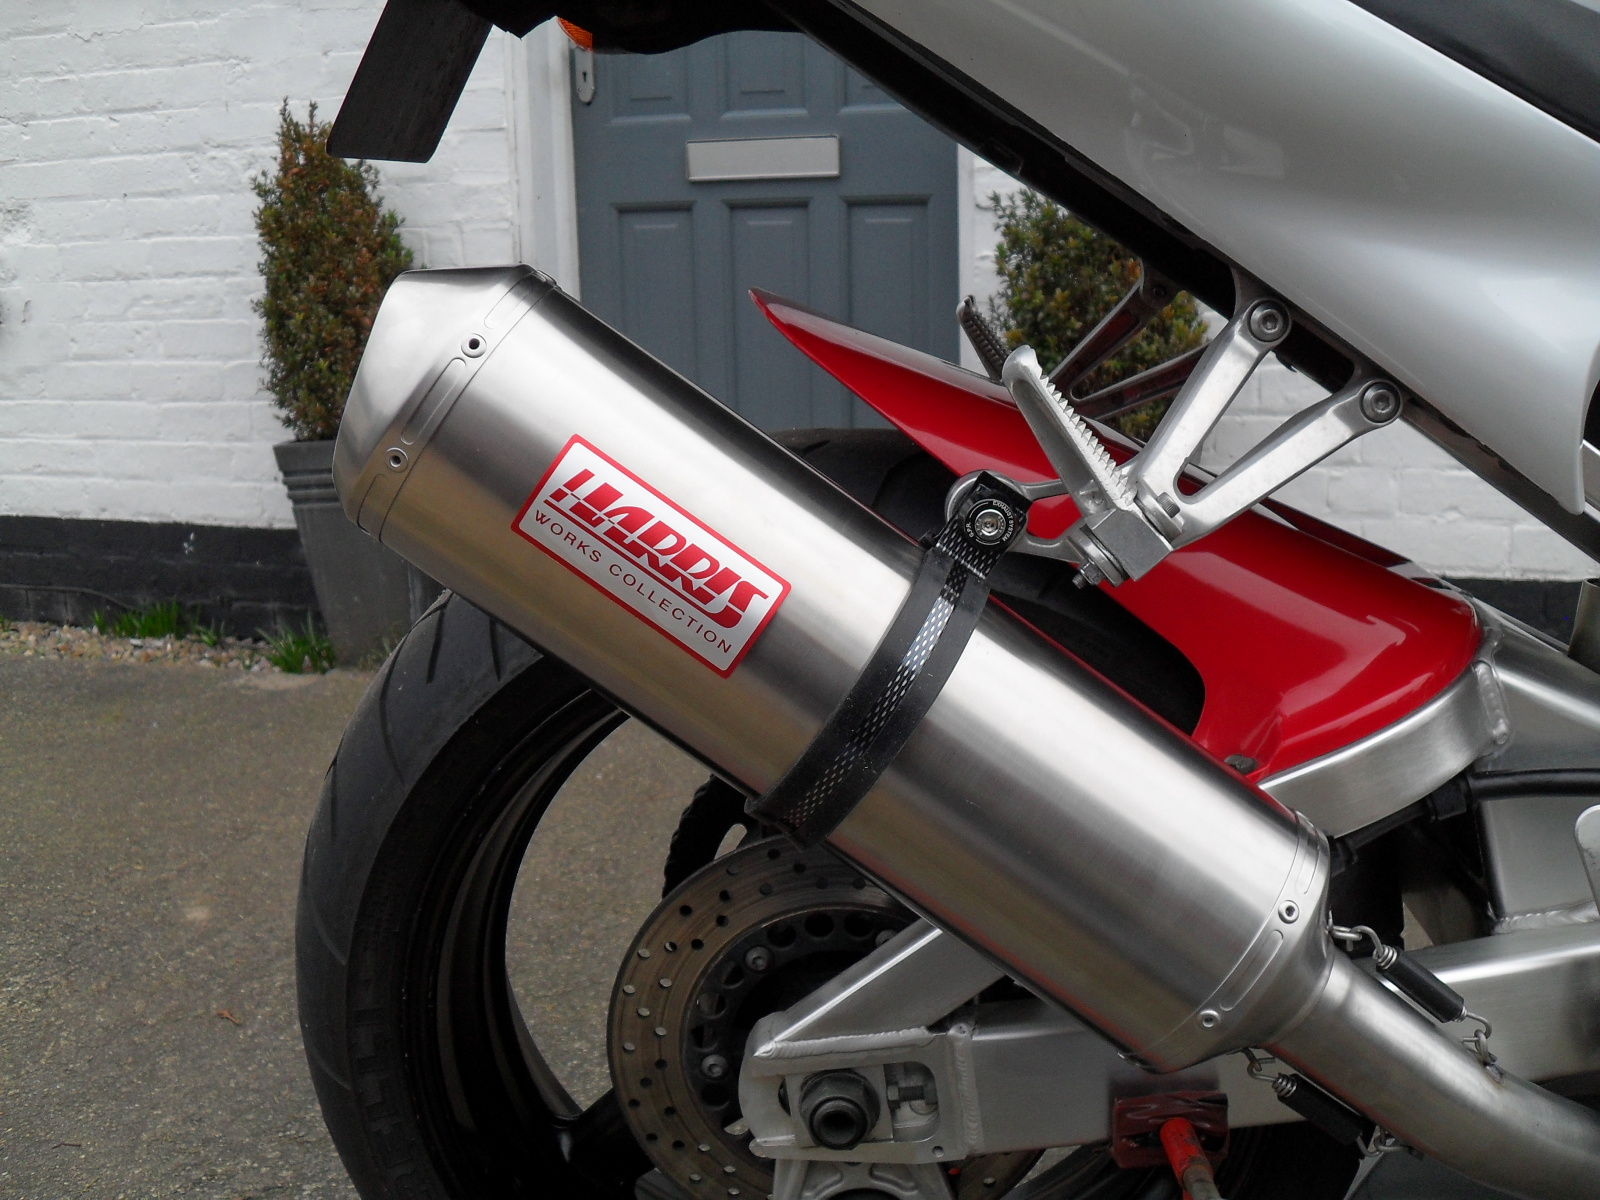 Harris Works Collection exhaust for Yamaha R1